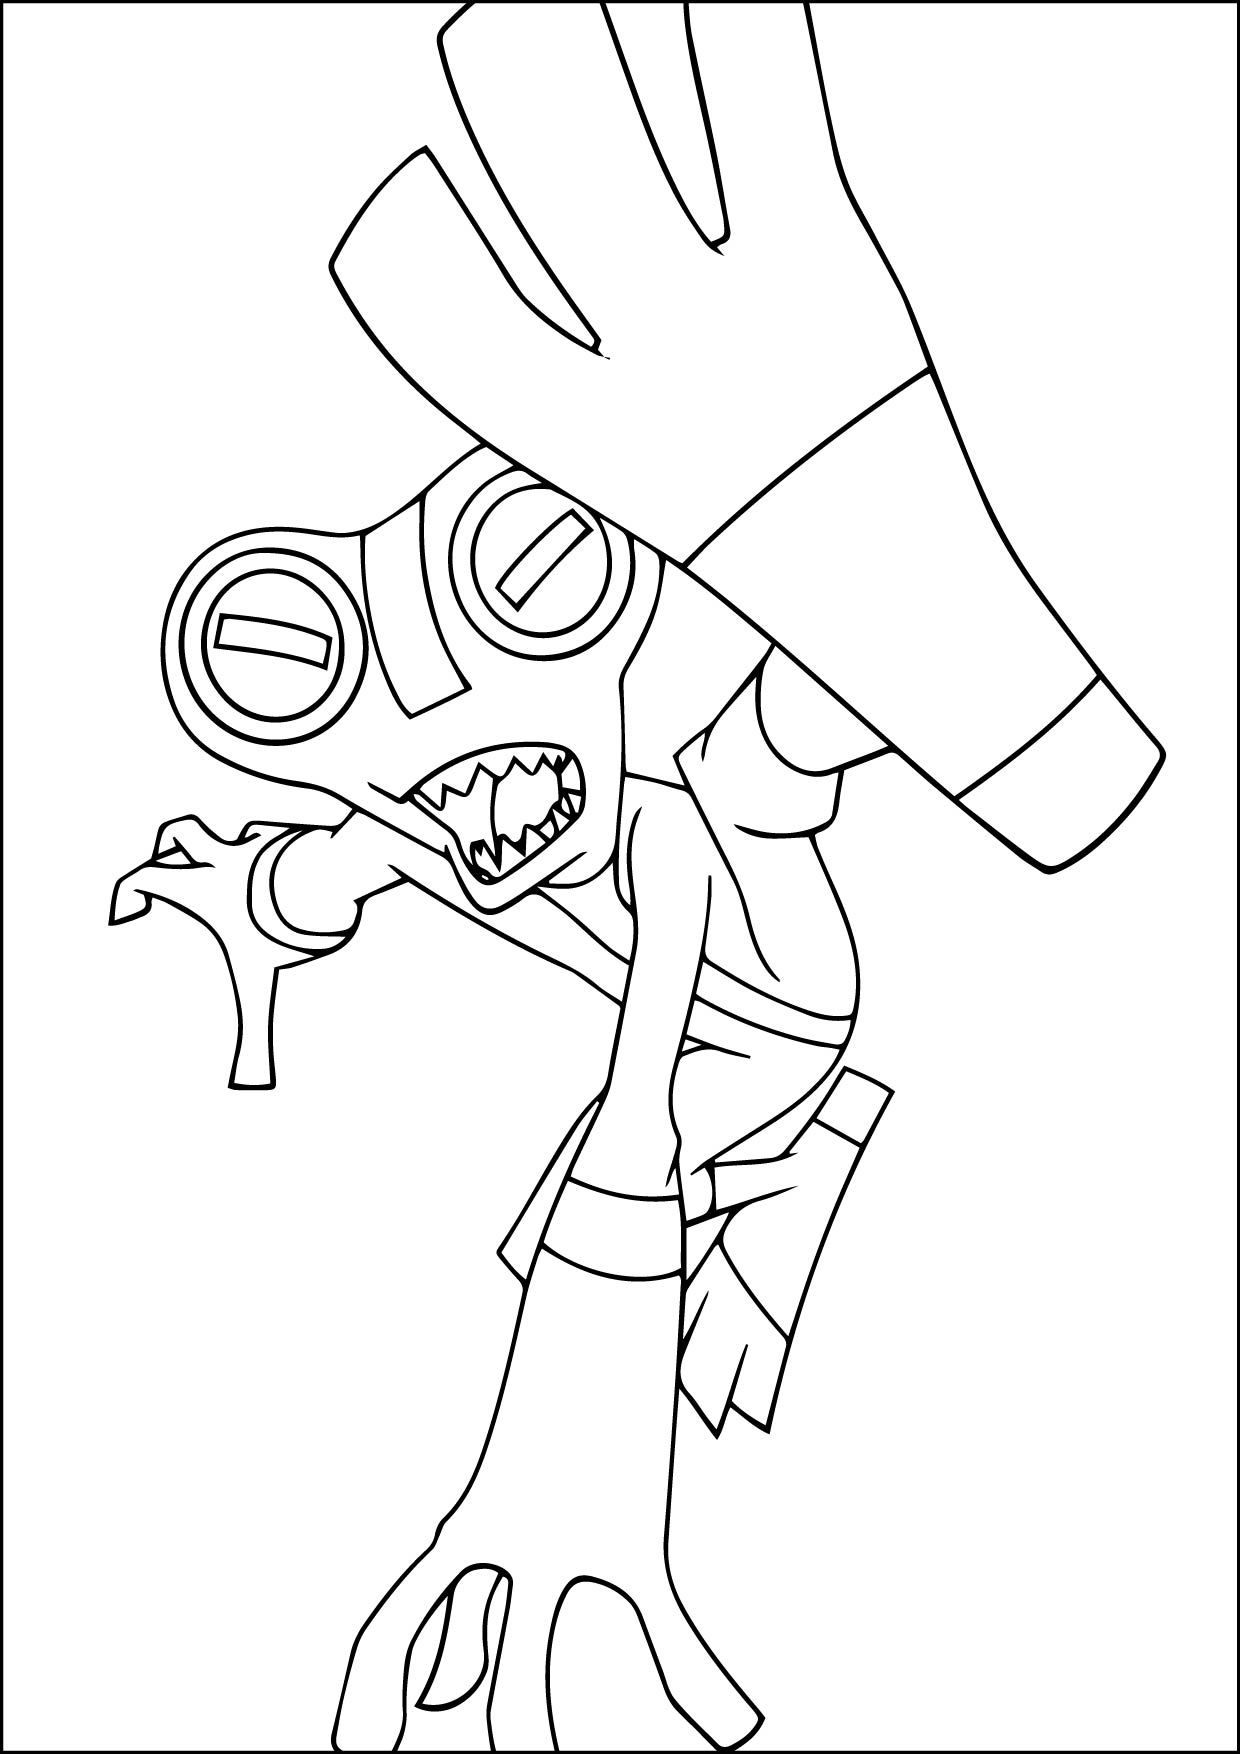 Cool Coloring Page 11 10 2015 034649 01 Check More At Http Www Mcoloring Com Index Php 2015 10 26 Coloring Coloring Pages For Kids Ben 10 Cool Coloring Pages